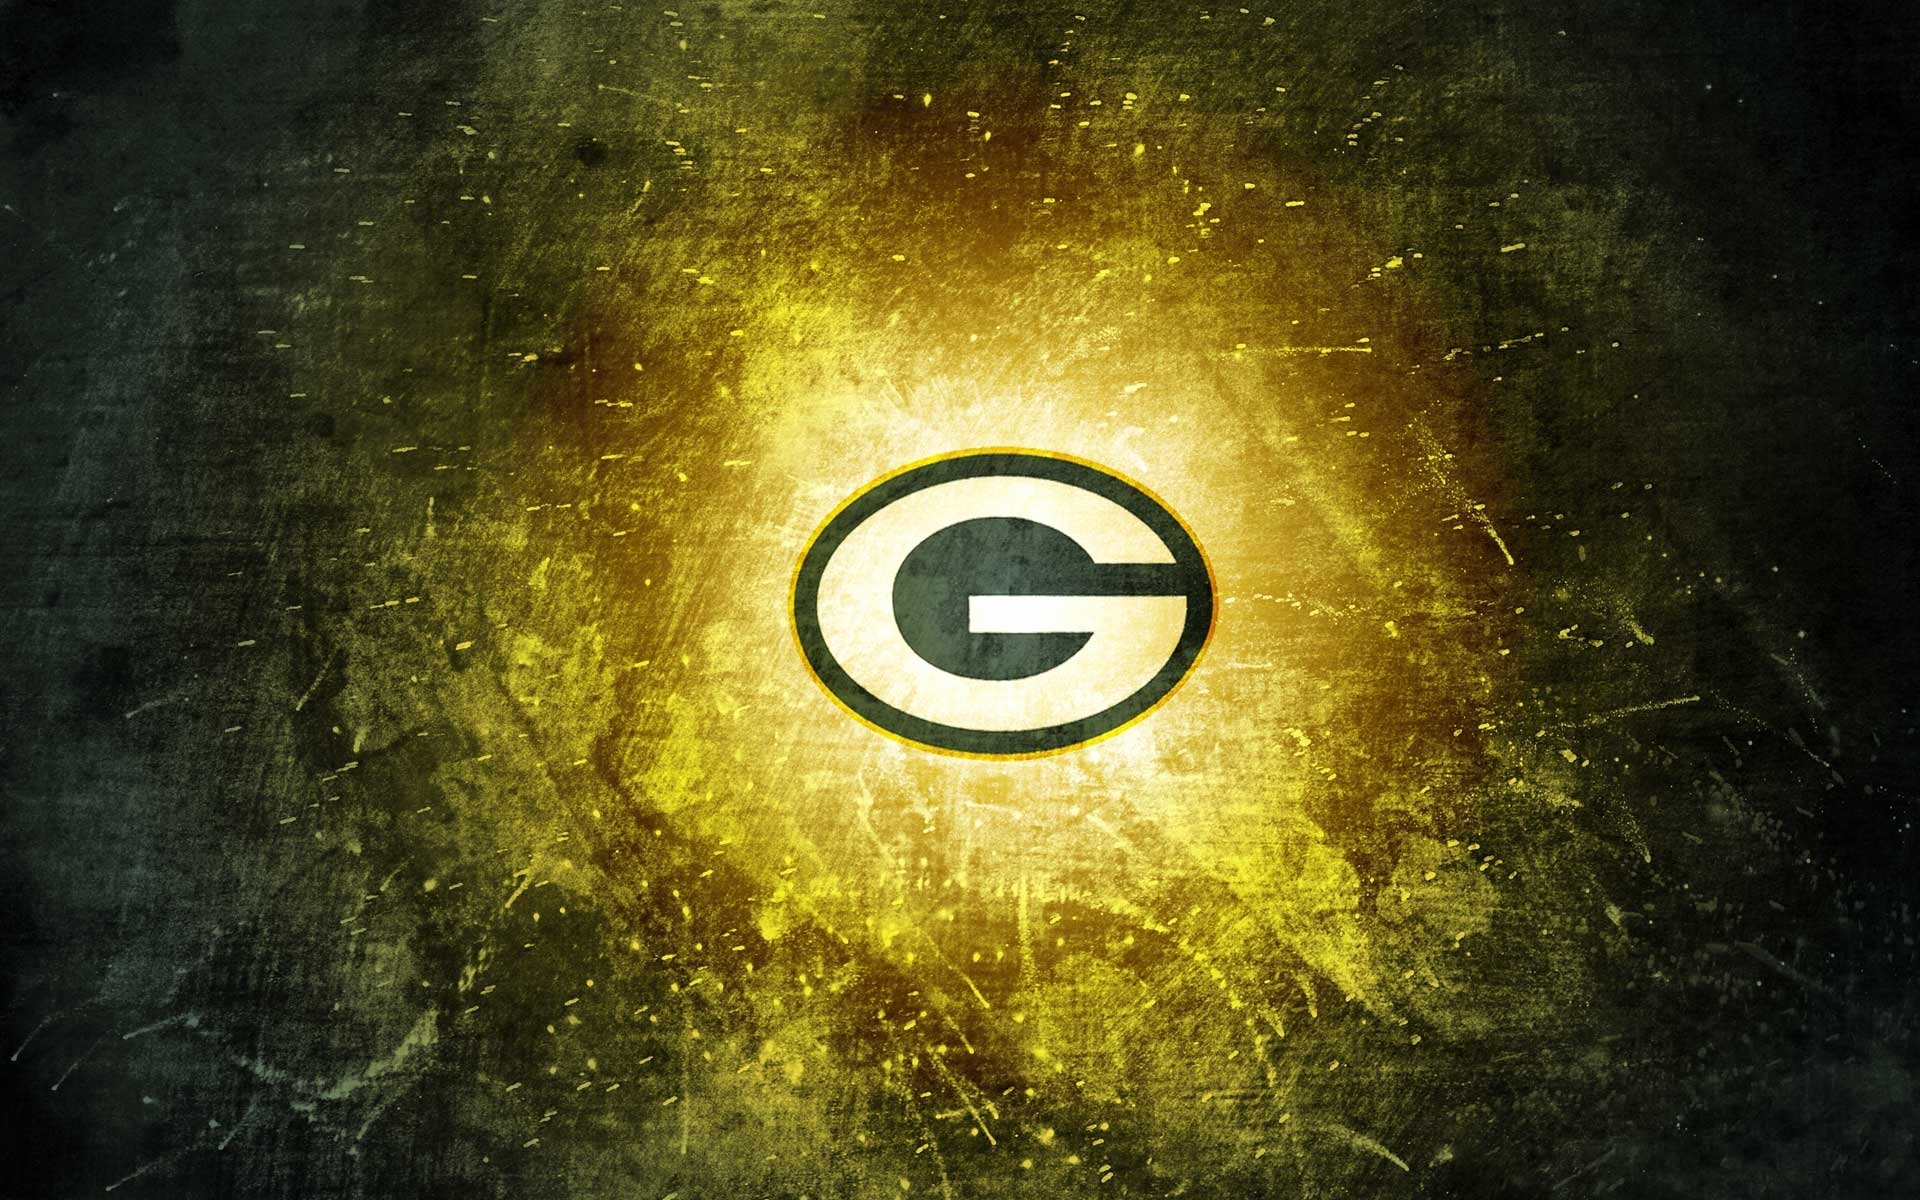 packers wallpaper fresh nfl green bay packers wallpaper 2018 live